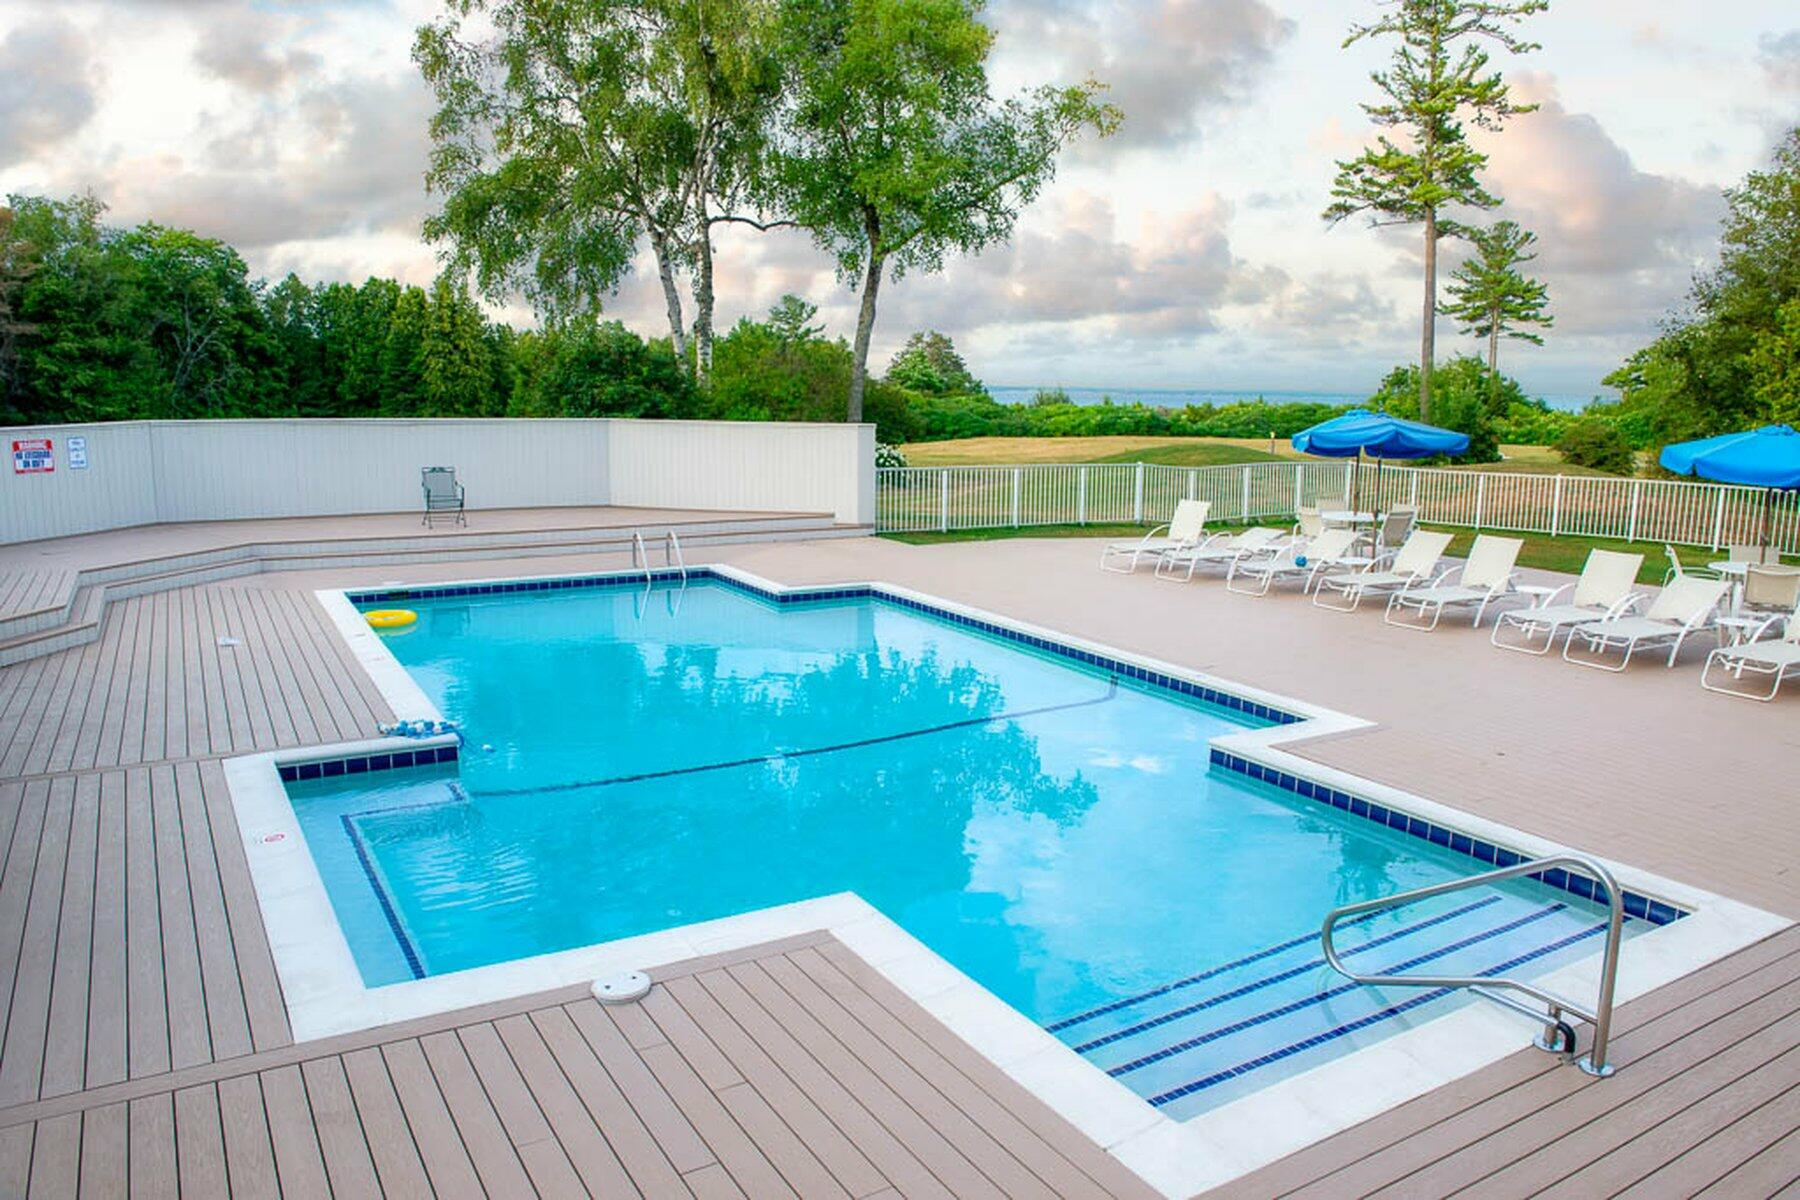 outdoor pool with lounge chairs